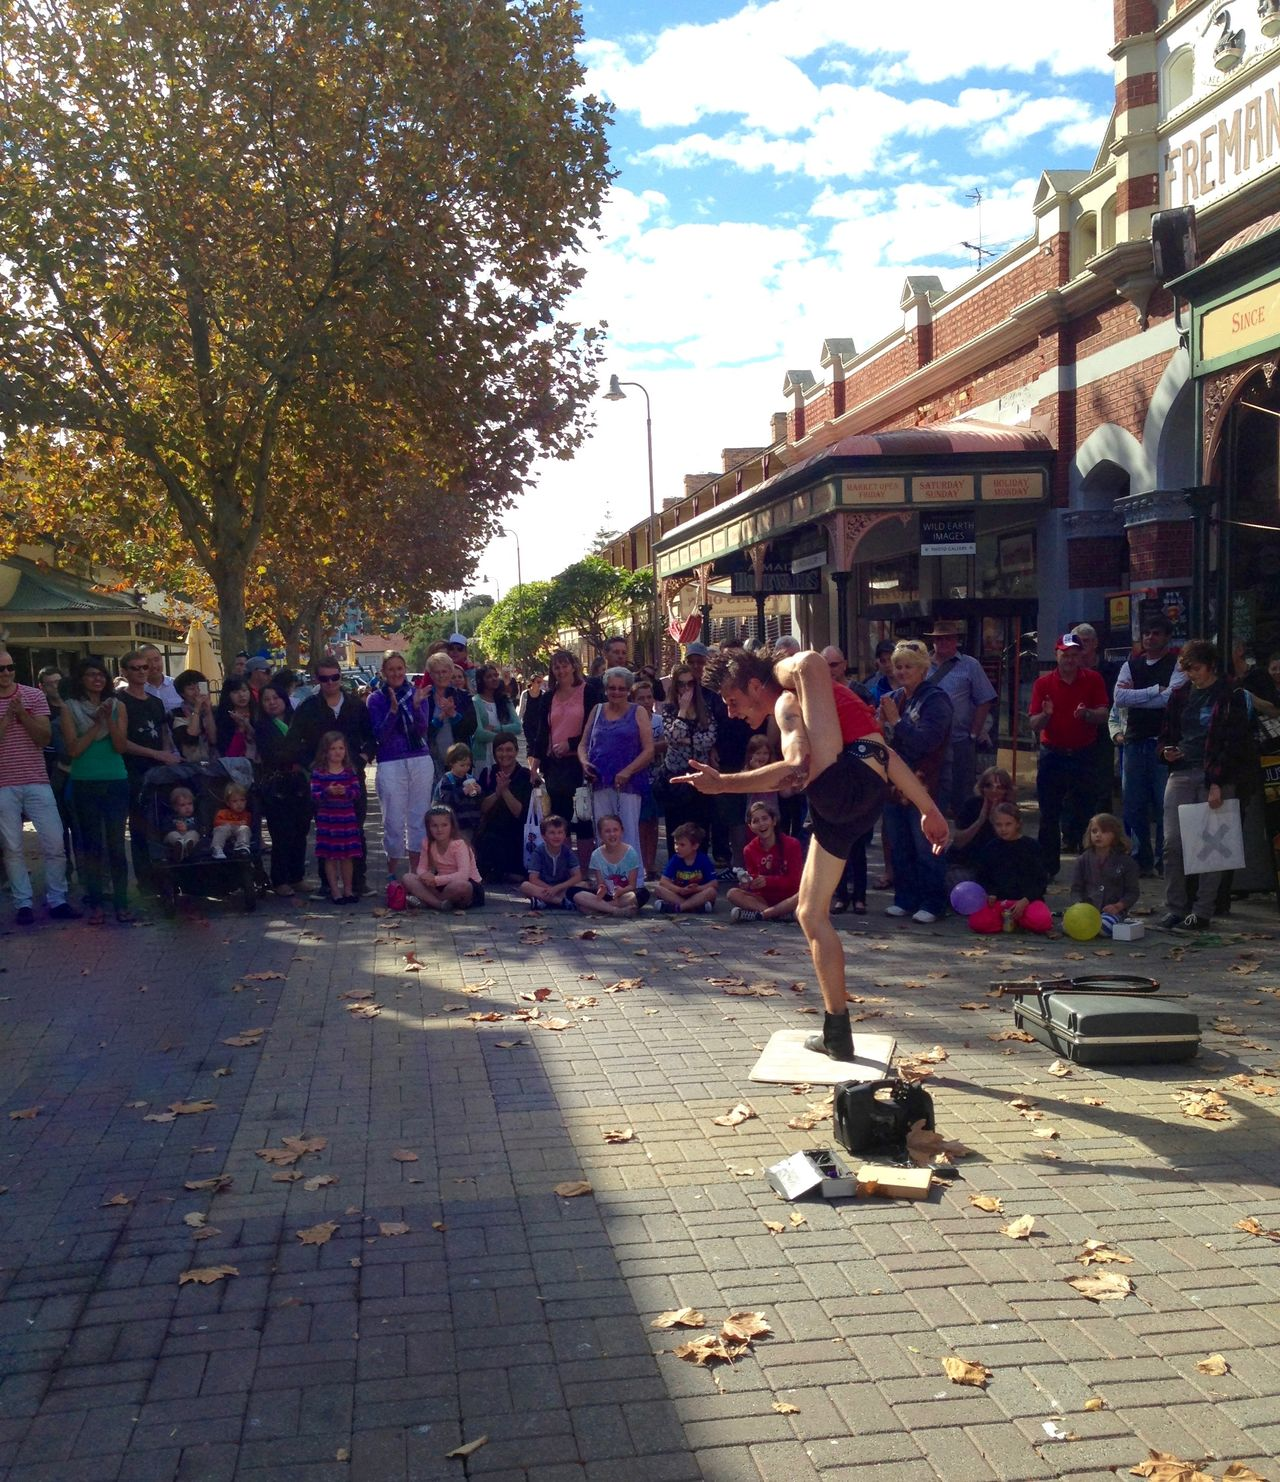 Busker outside the Fremantle Markets Architecture Artistic Expression Busker City City Life City Street Crowd Day Entertainment Flexible Fremantle, Western Australia Large Group Of People Leisure Activity Man Market Outdoors Perfomance Performer  Street Street Photography Thin Urban Urban Lifestyle